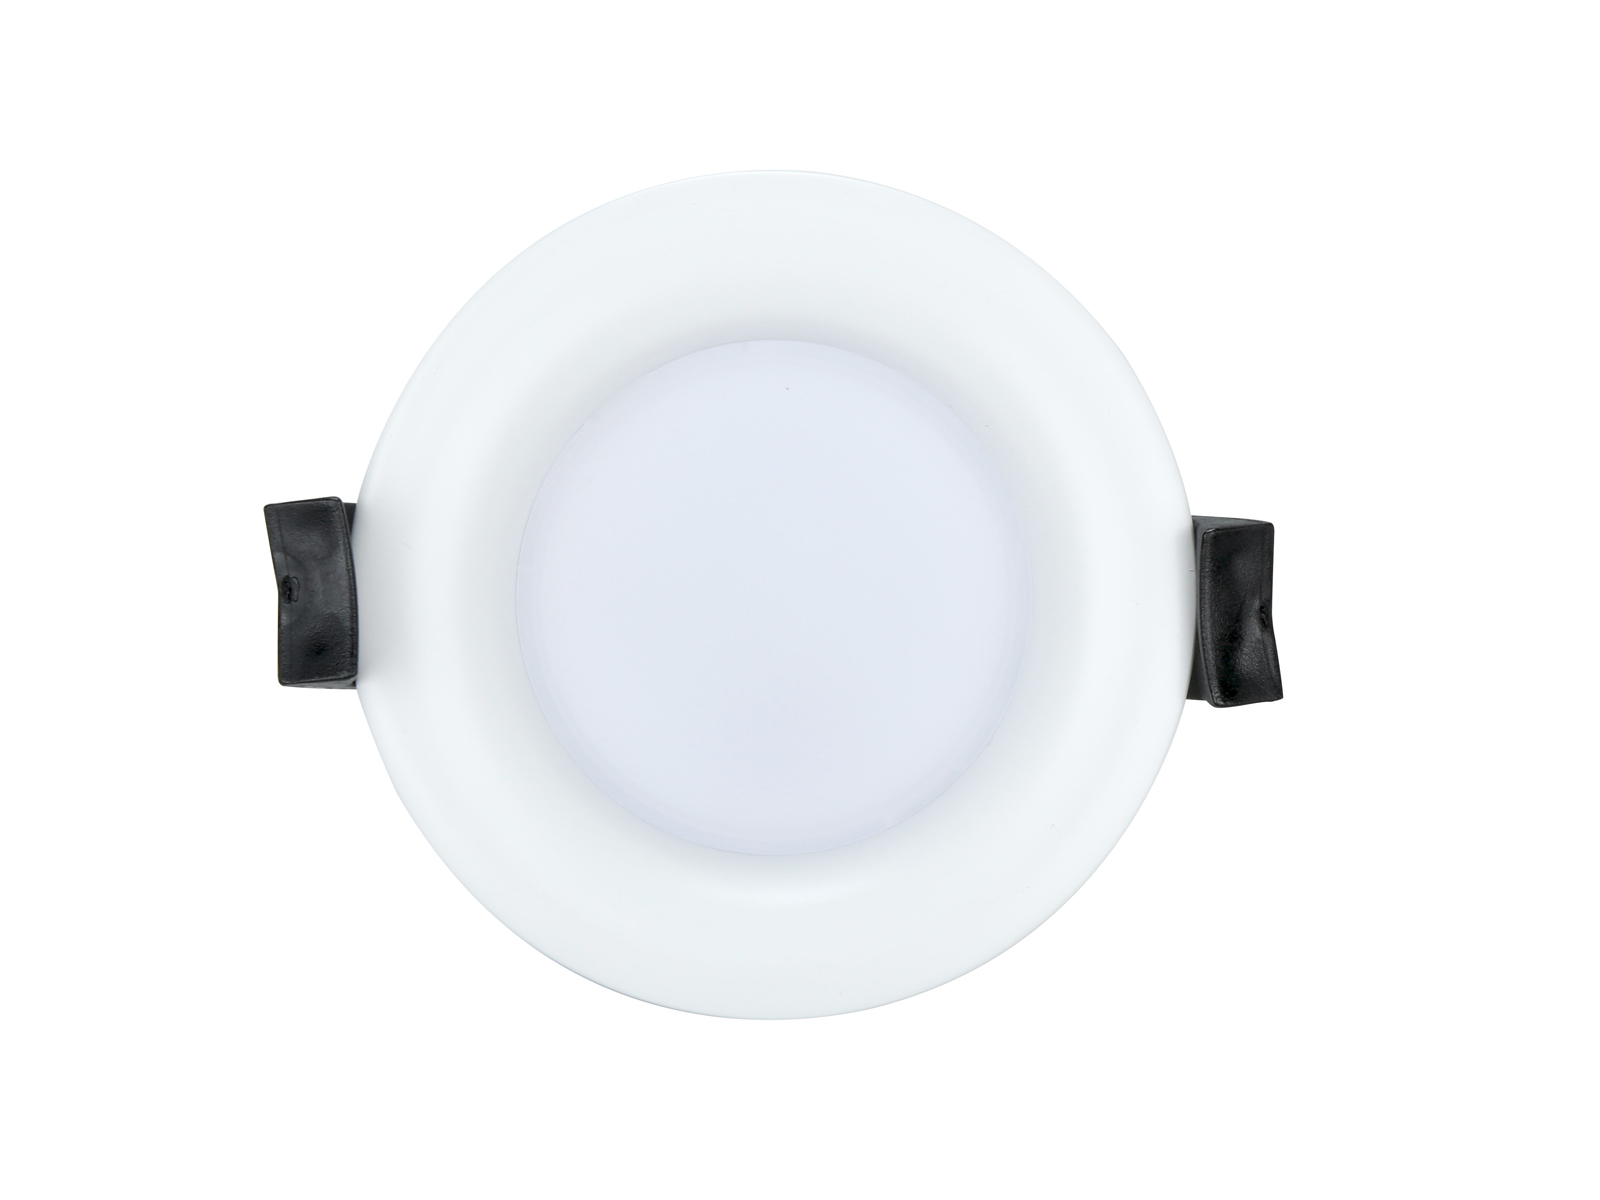 DL90 2 High Lumen LED Downlight Fixture